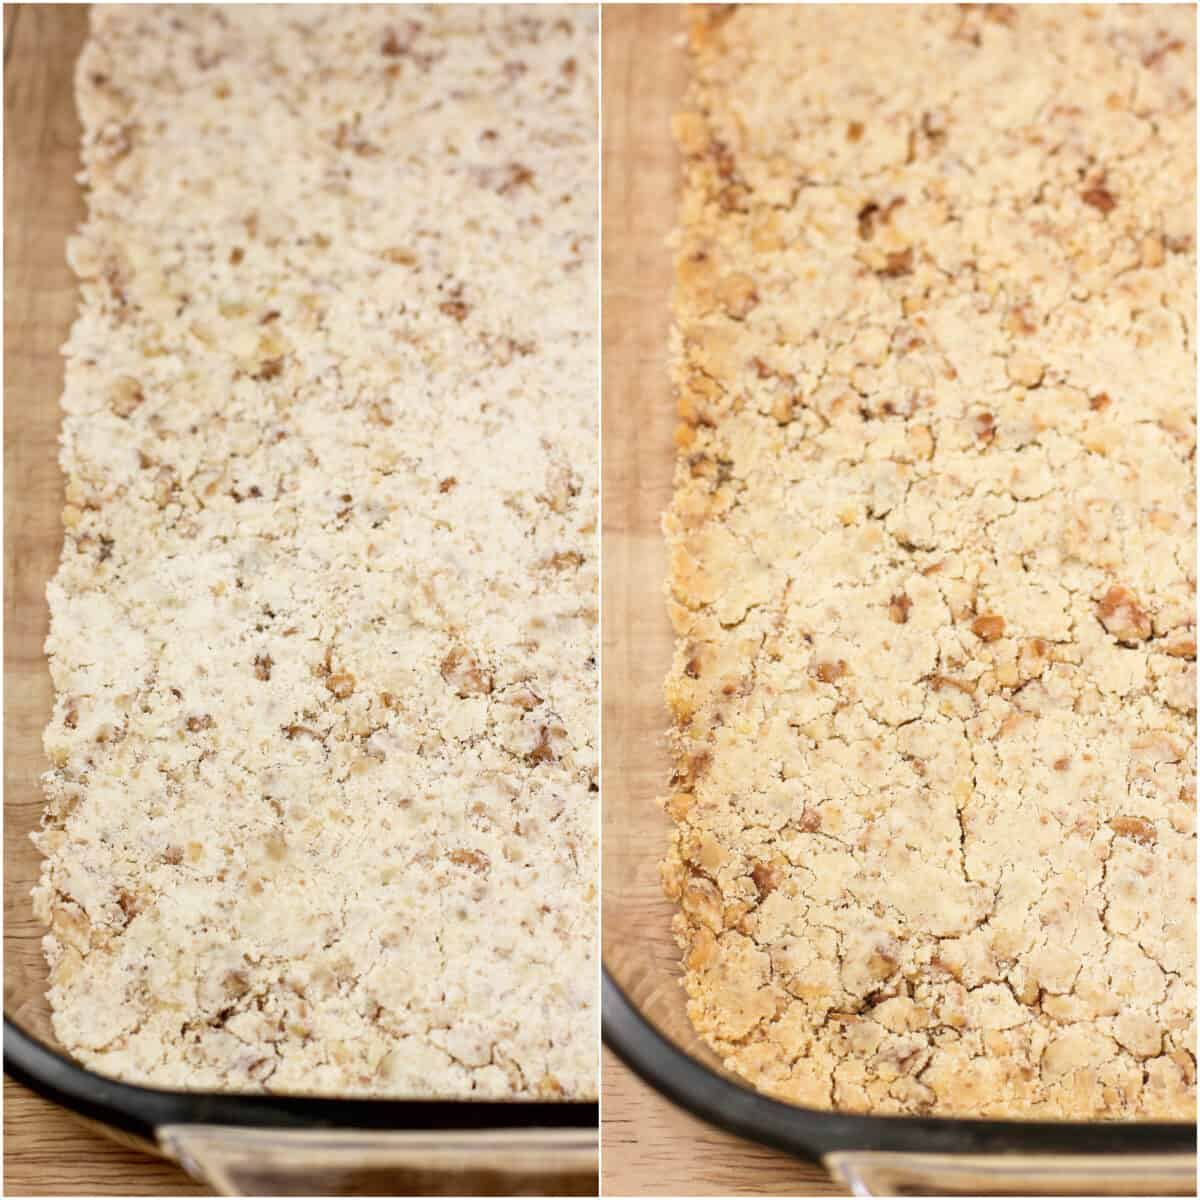 collage of 2 photos showing walnut crust before and after baking